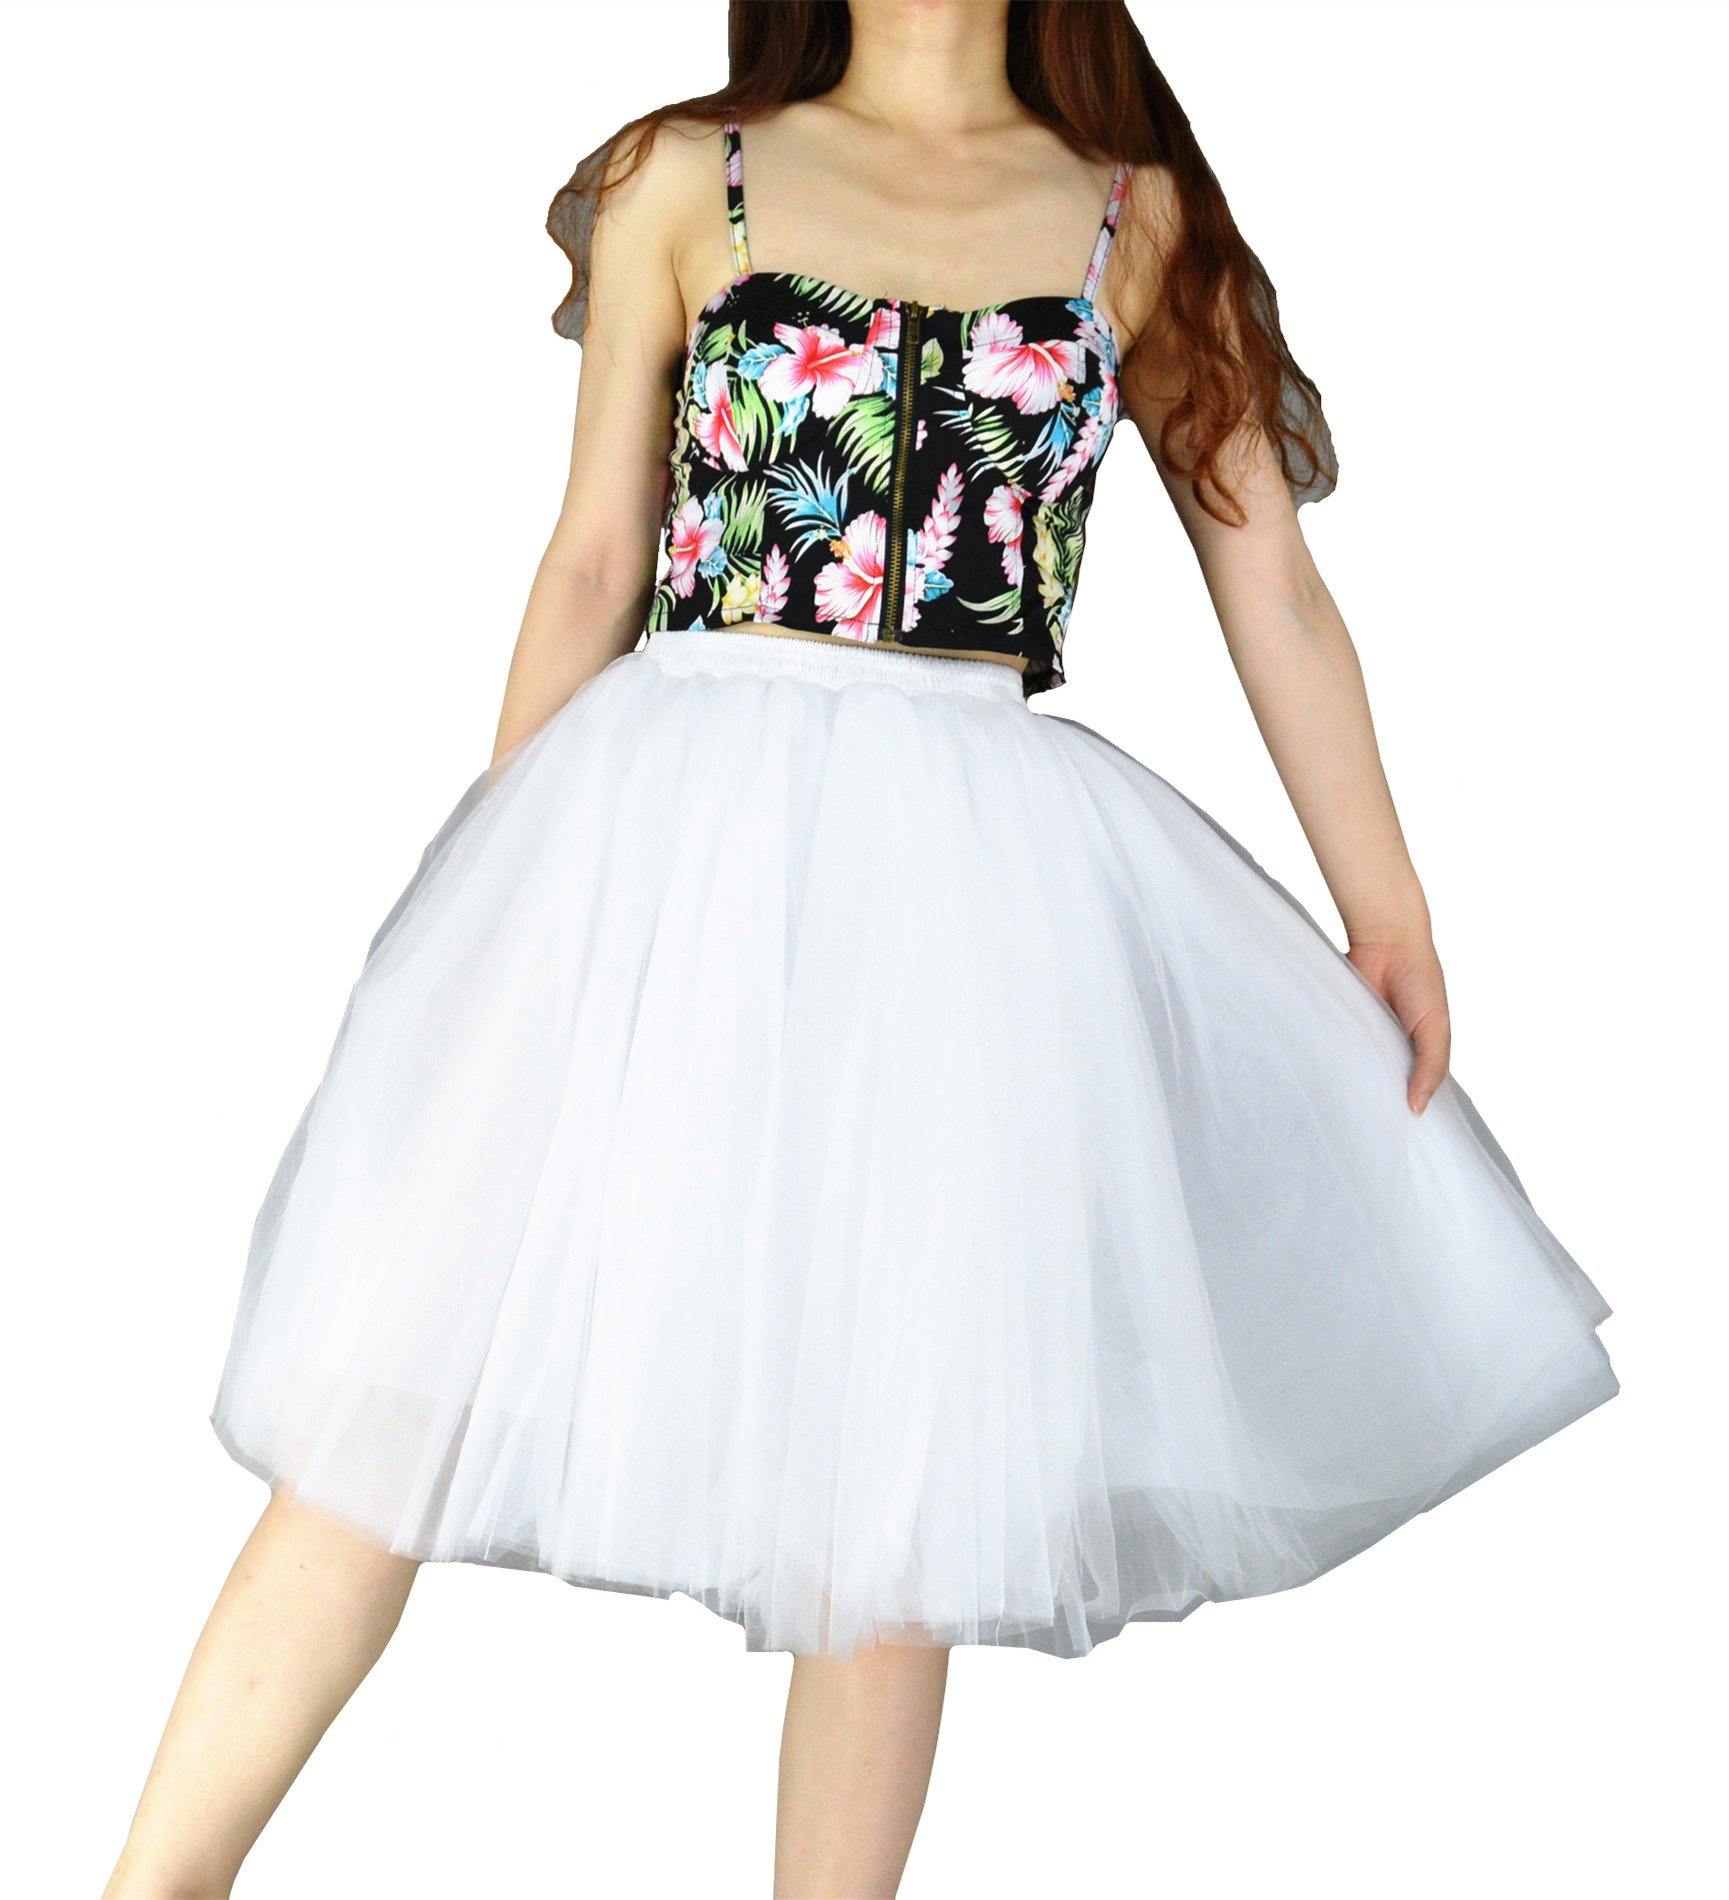 YSJ Women's Layered Tutu Tulle Knee Length A Line Prom Party Skirts (One Size, White)